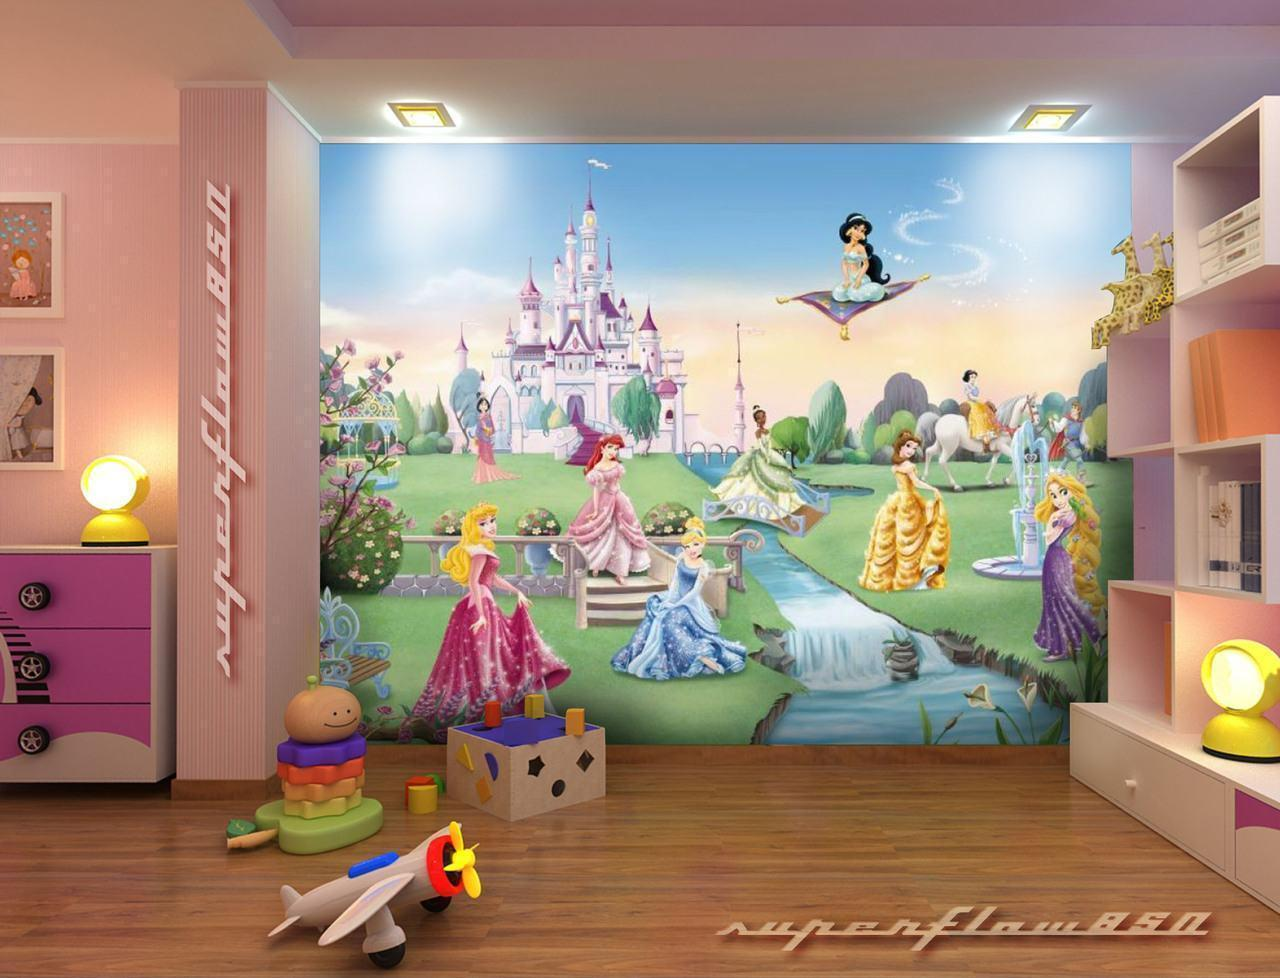 Disney castle backgrounds wallpaper cave for Disney wall stencils for painting kids rooms